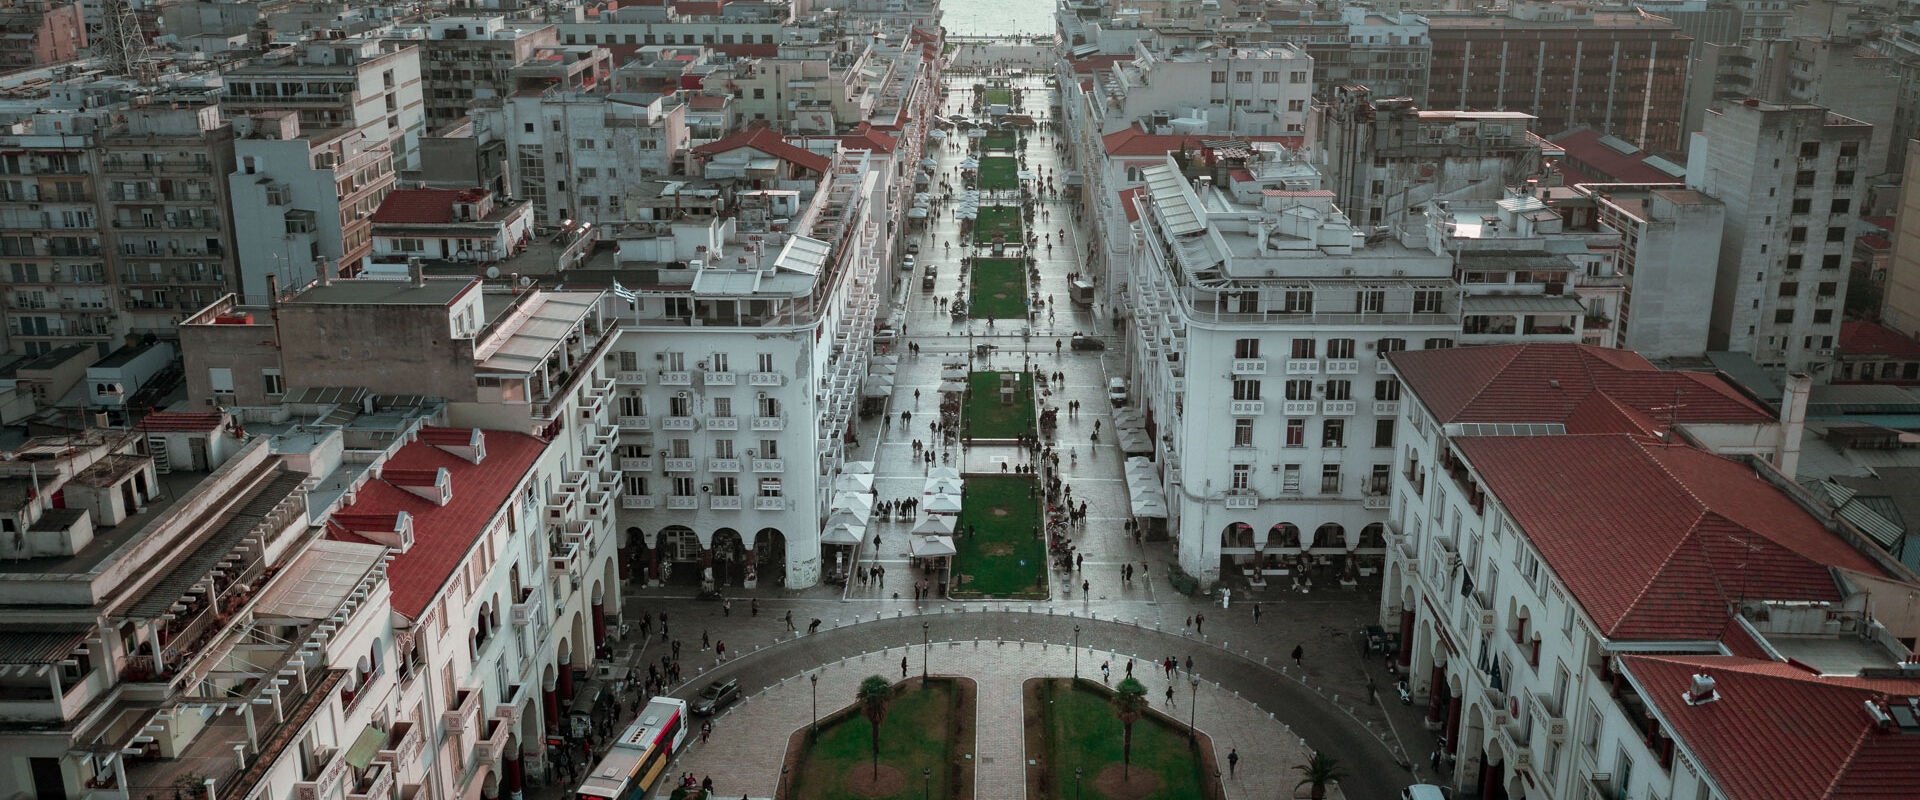 Aristotelous square from above